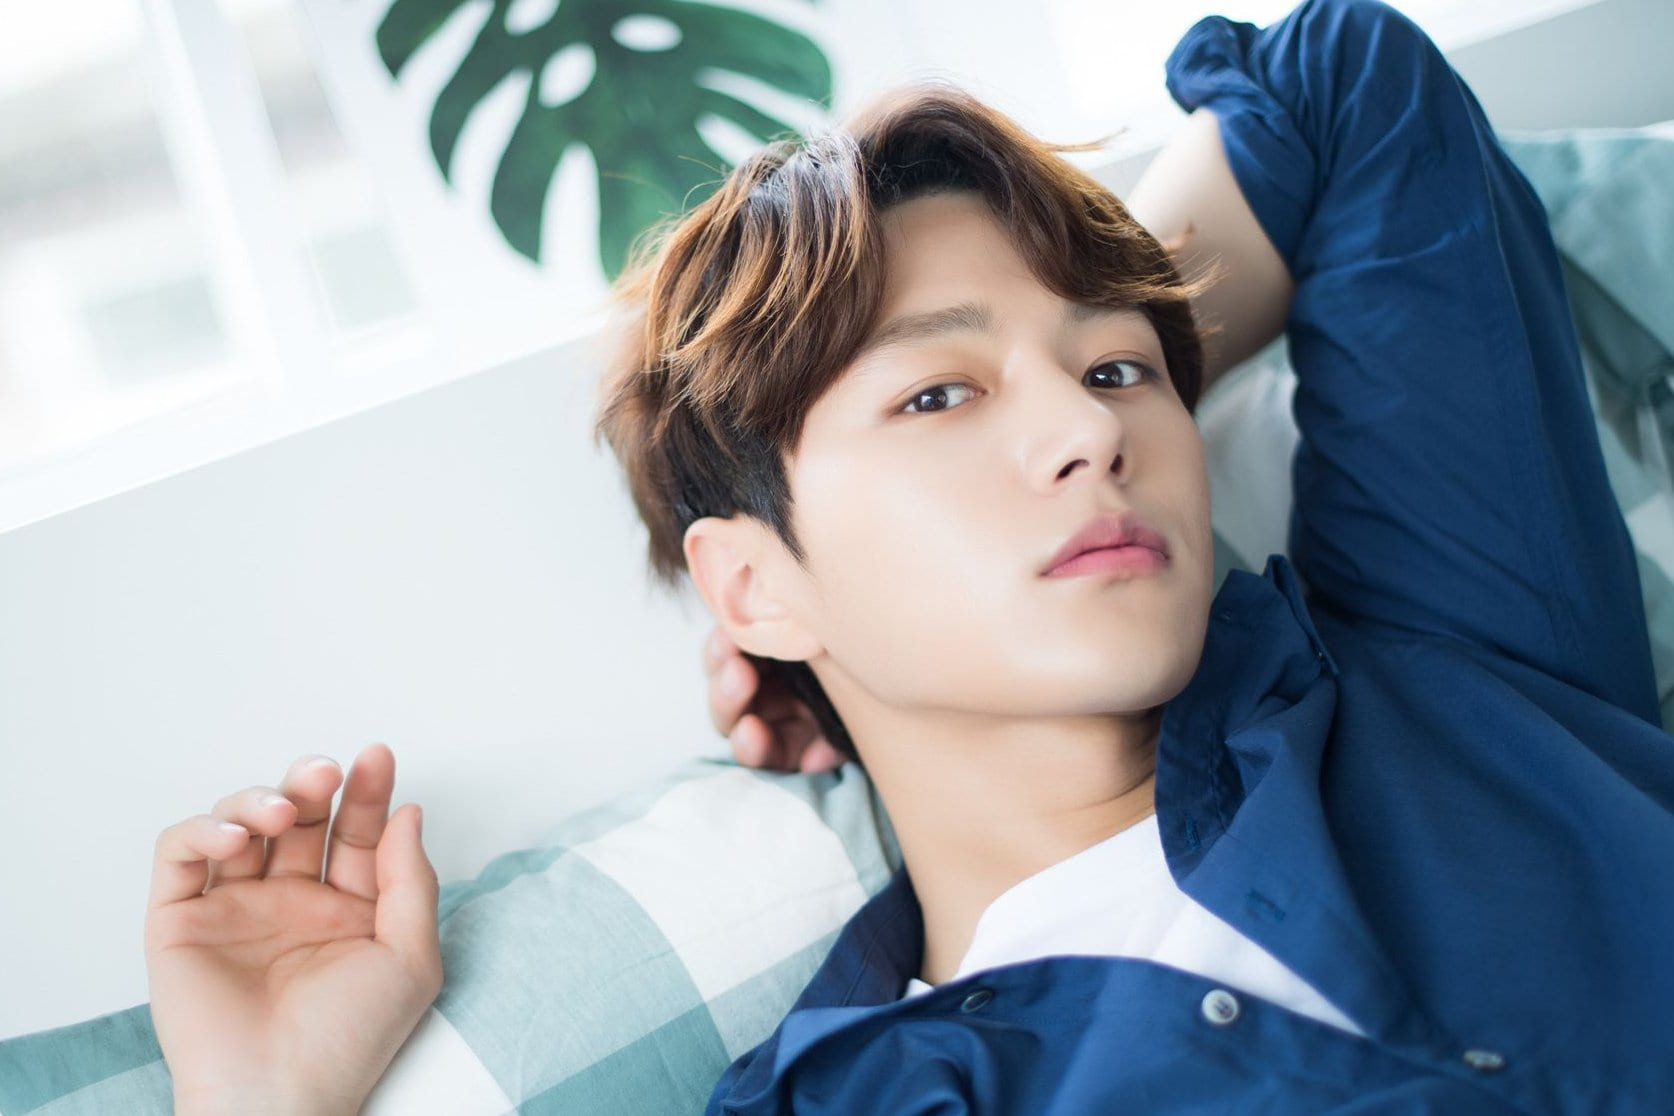 INFINITE's L Announces Departure From Woollim Entertainment After Contract Ended